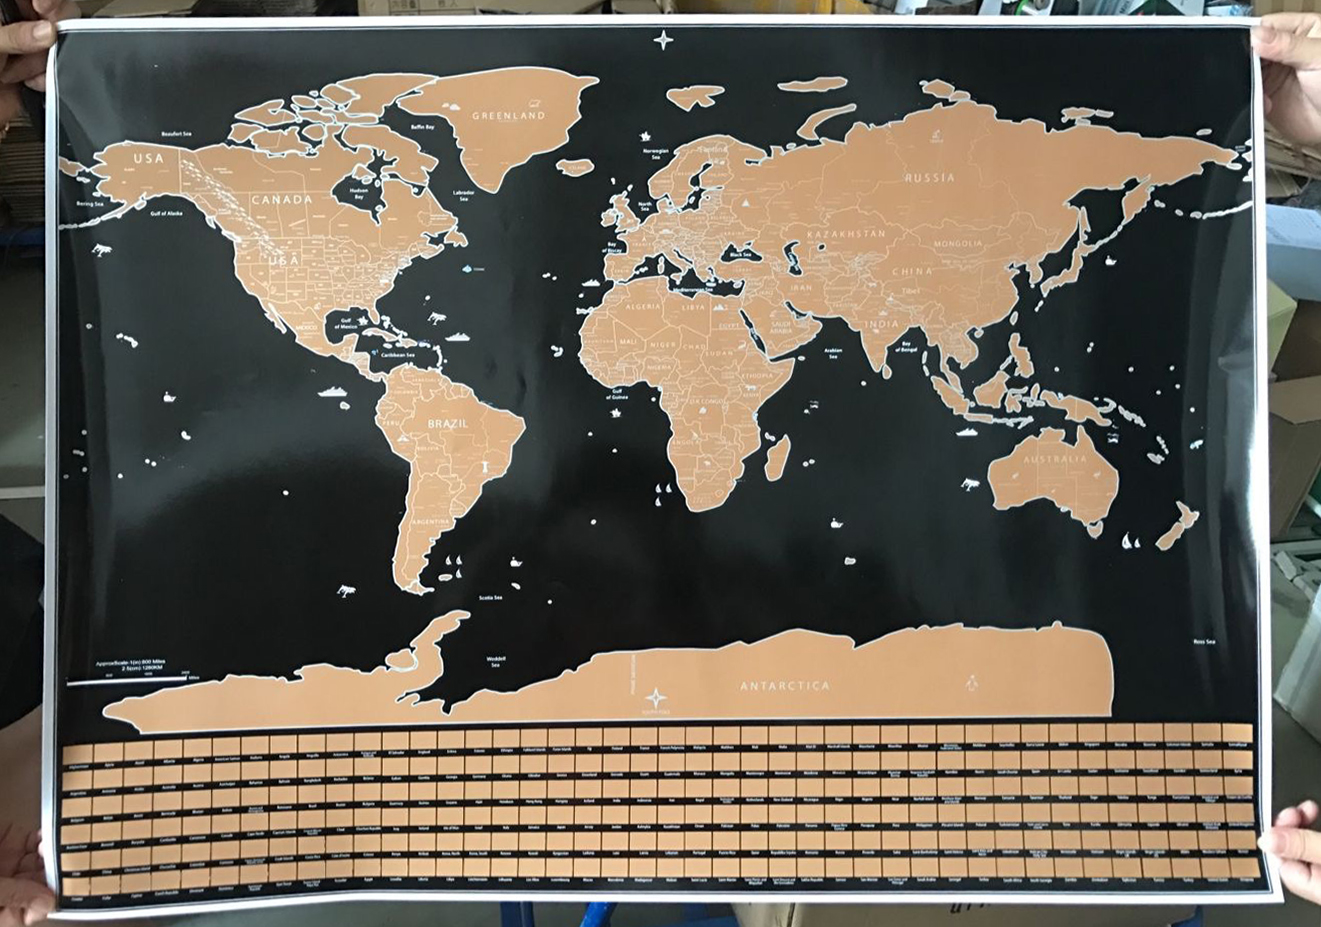 1 pcs new arrival deluxe scratch off map personalized world flag 1 pcs new arrival deluxe scratch off map personalized world flag scratch map scratch off for travel in wall stickers from home garden on aliexpress gumiabroncs Image collections